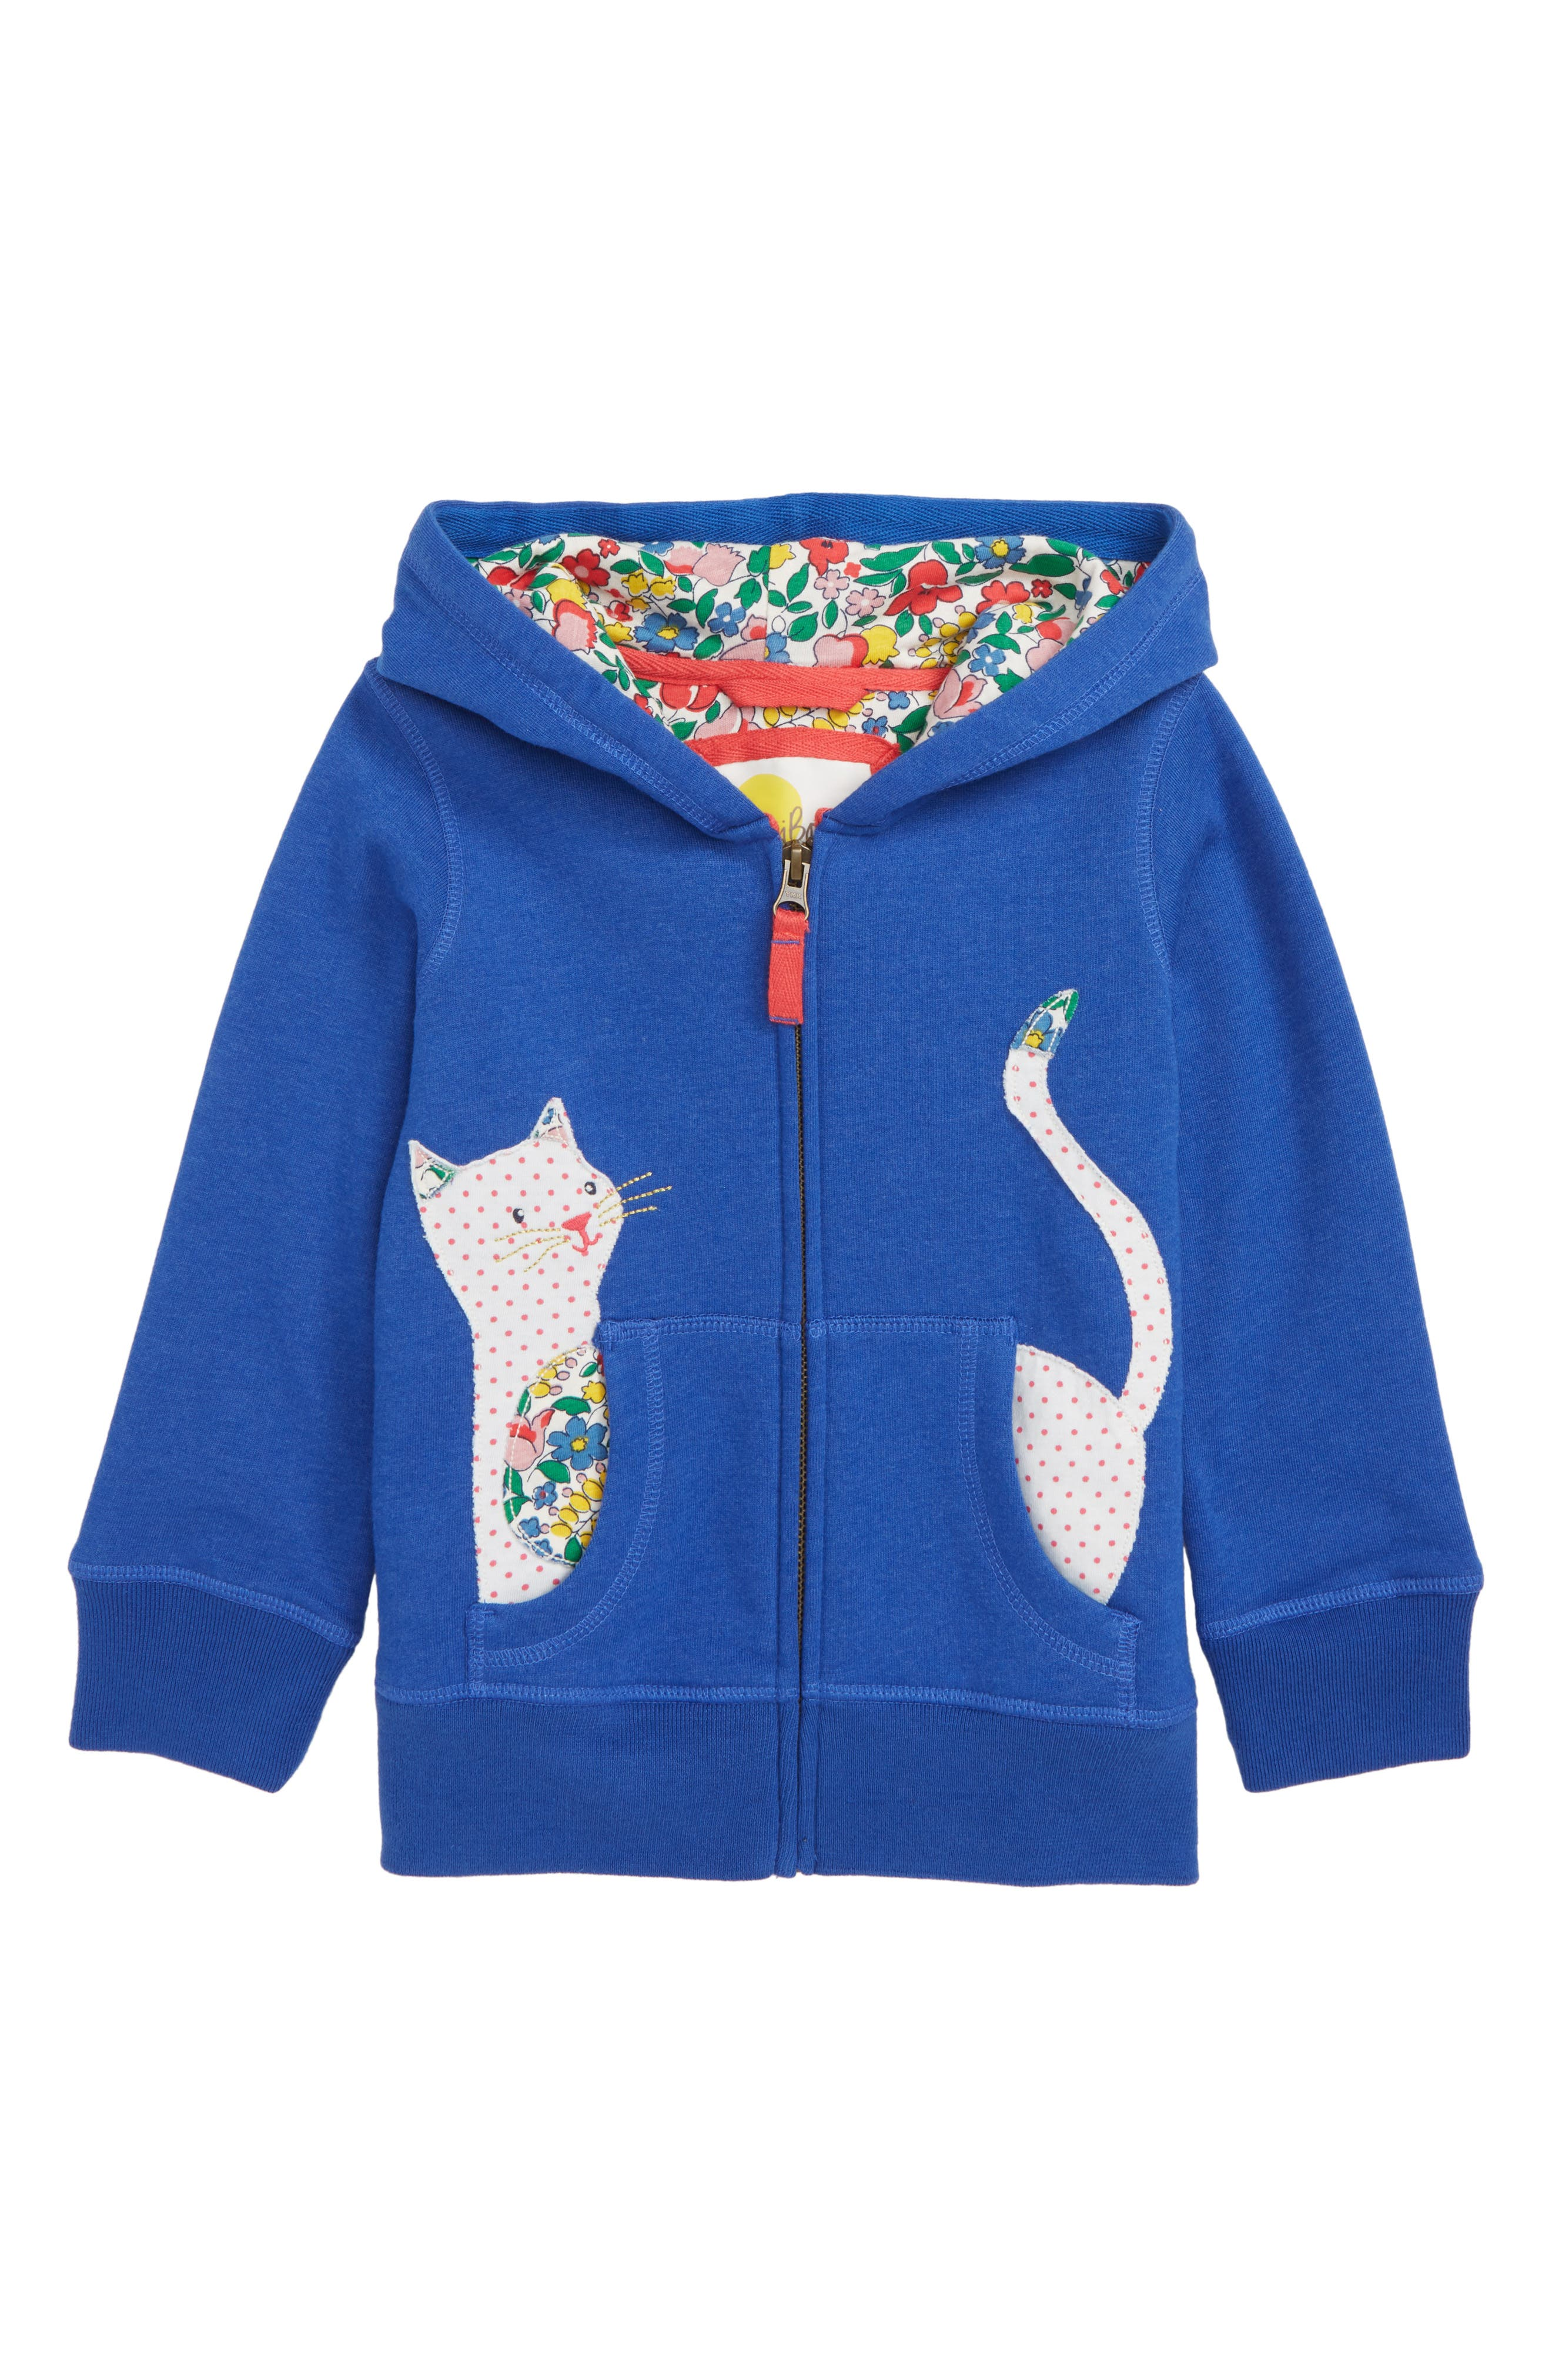 Novelty Front Zip Hoodie,                         Main,                         color, COBALT BLUE PEGASUS